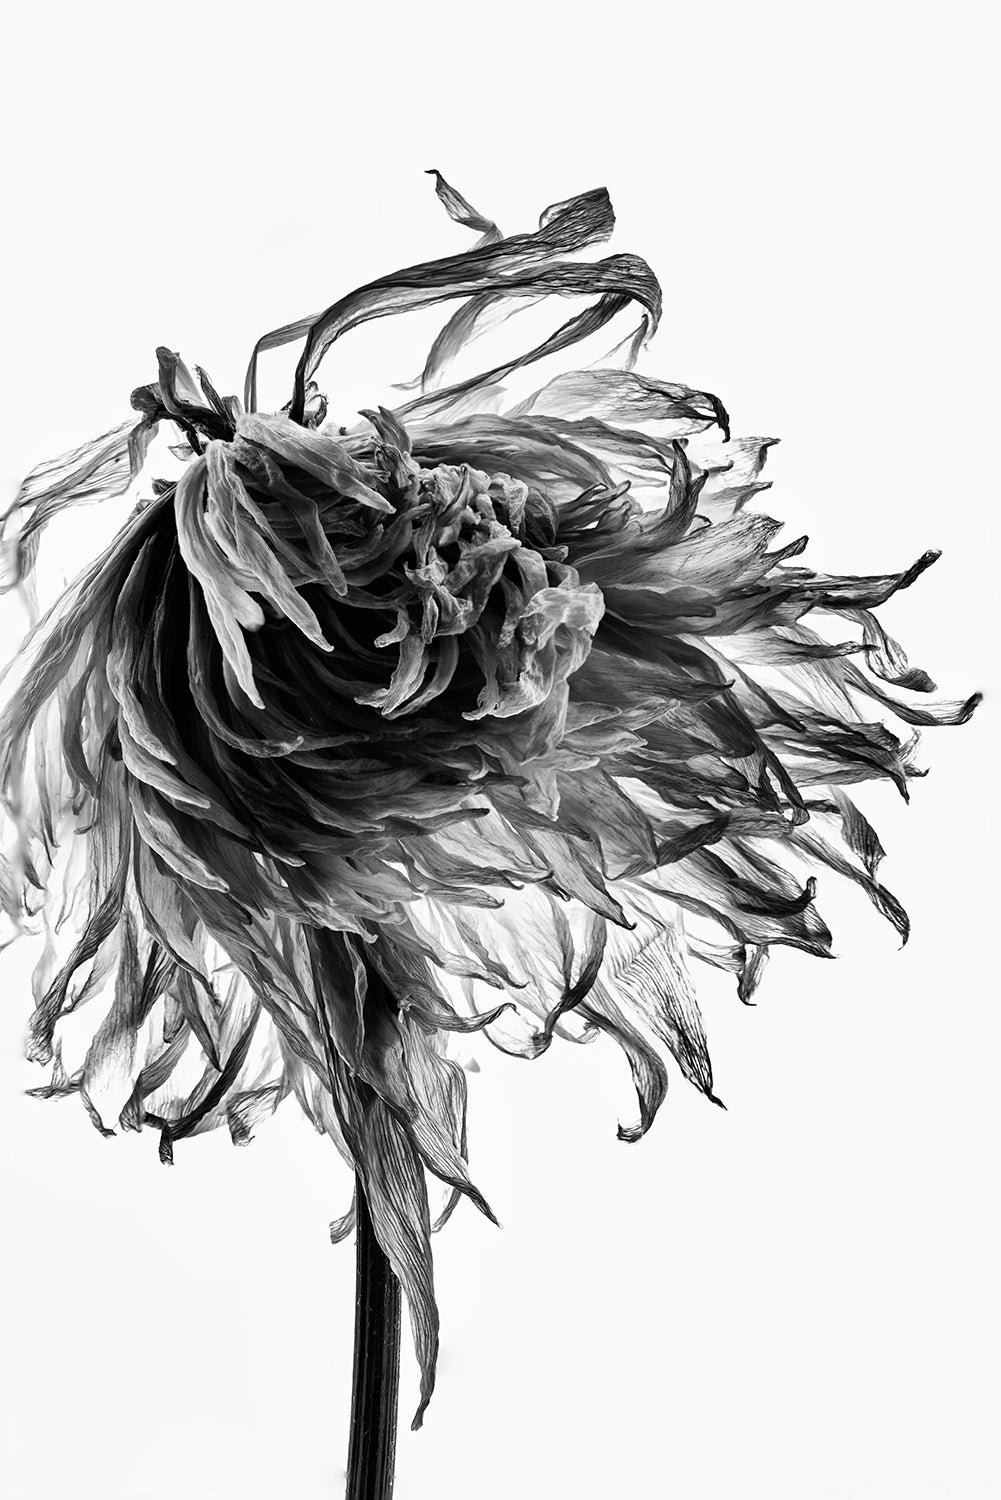 Dead Flower Detail, Black and White Photograph by Keith Dotson.